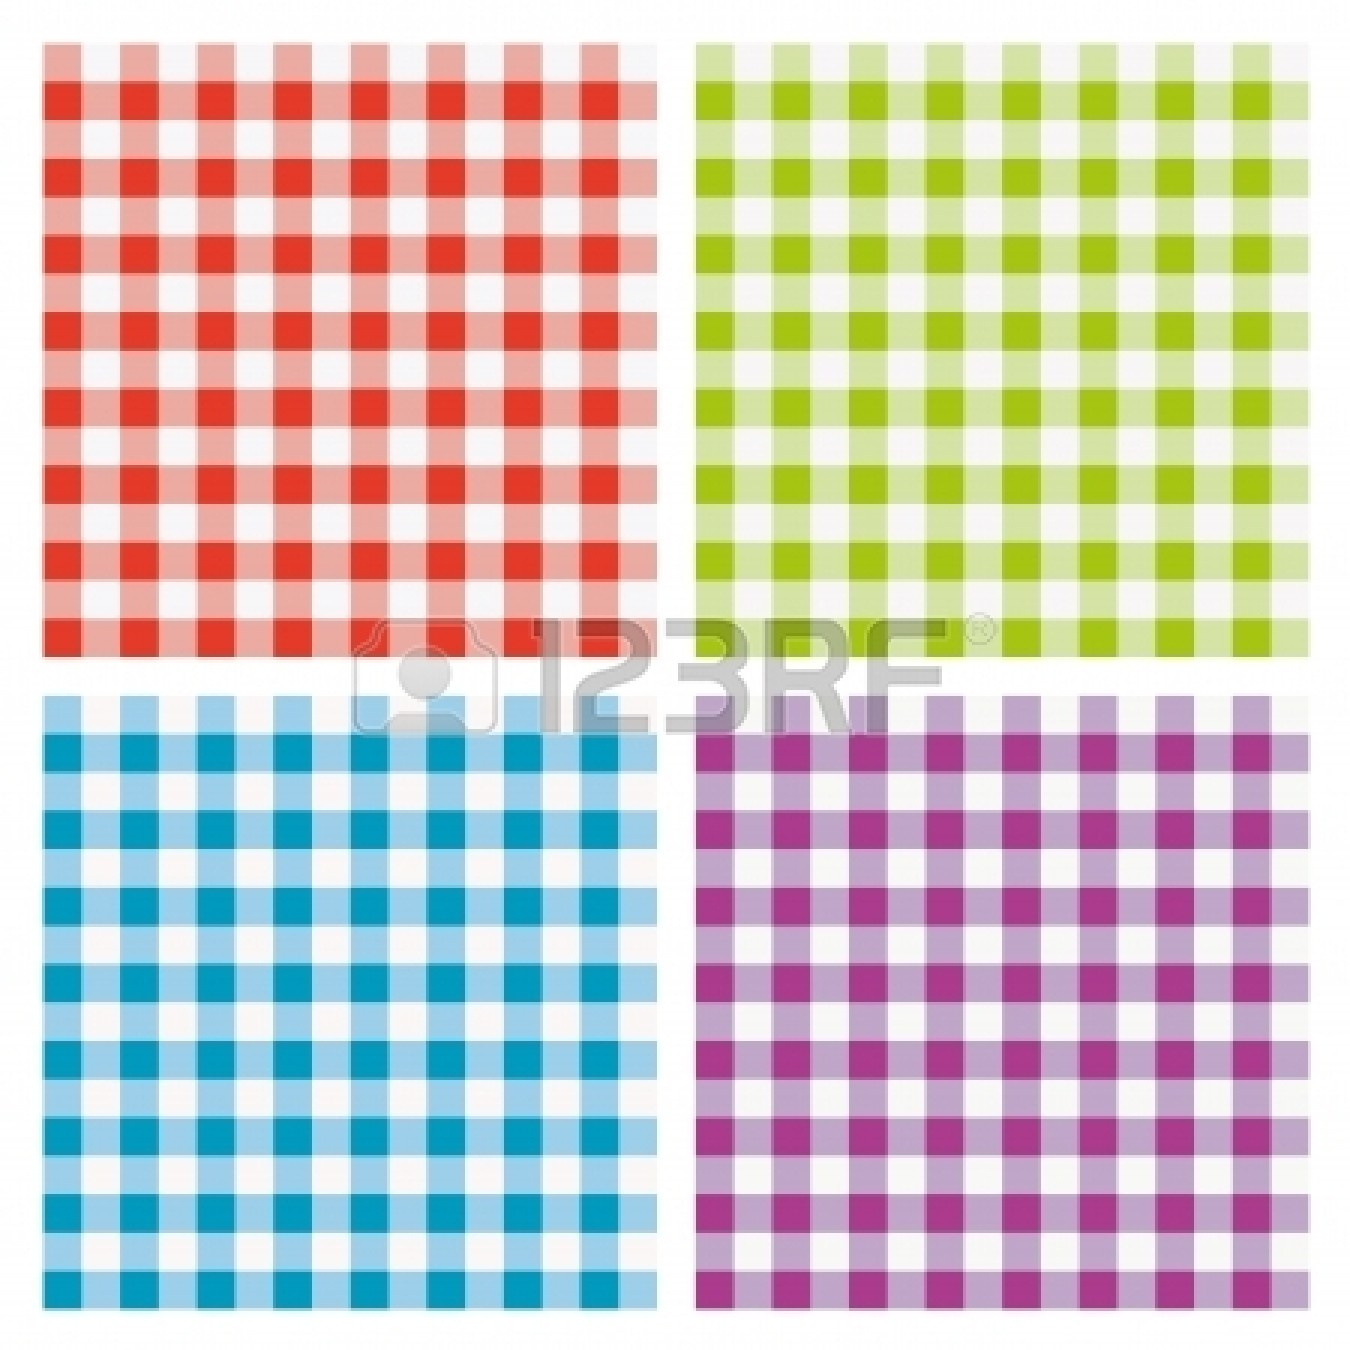 picnic tablecloth clipart clipart panda free clipart images rh clipartpanda com checkered tablecloth clipart Table Setting Clip Art